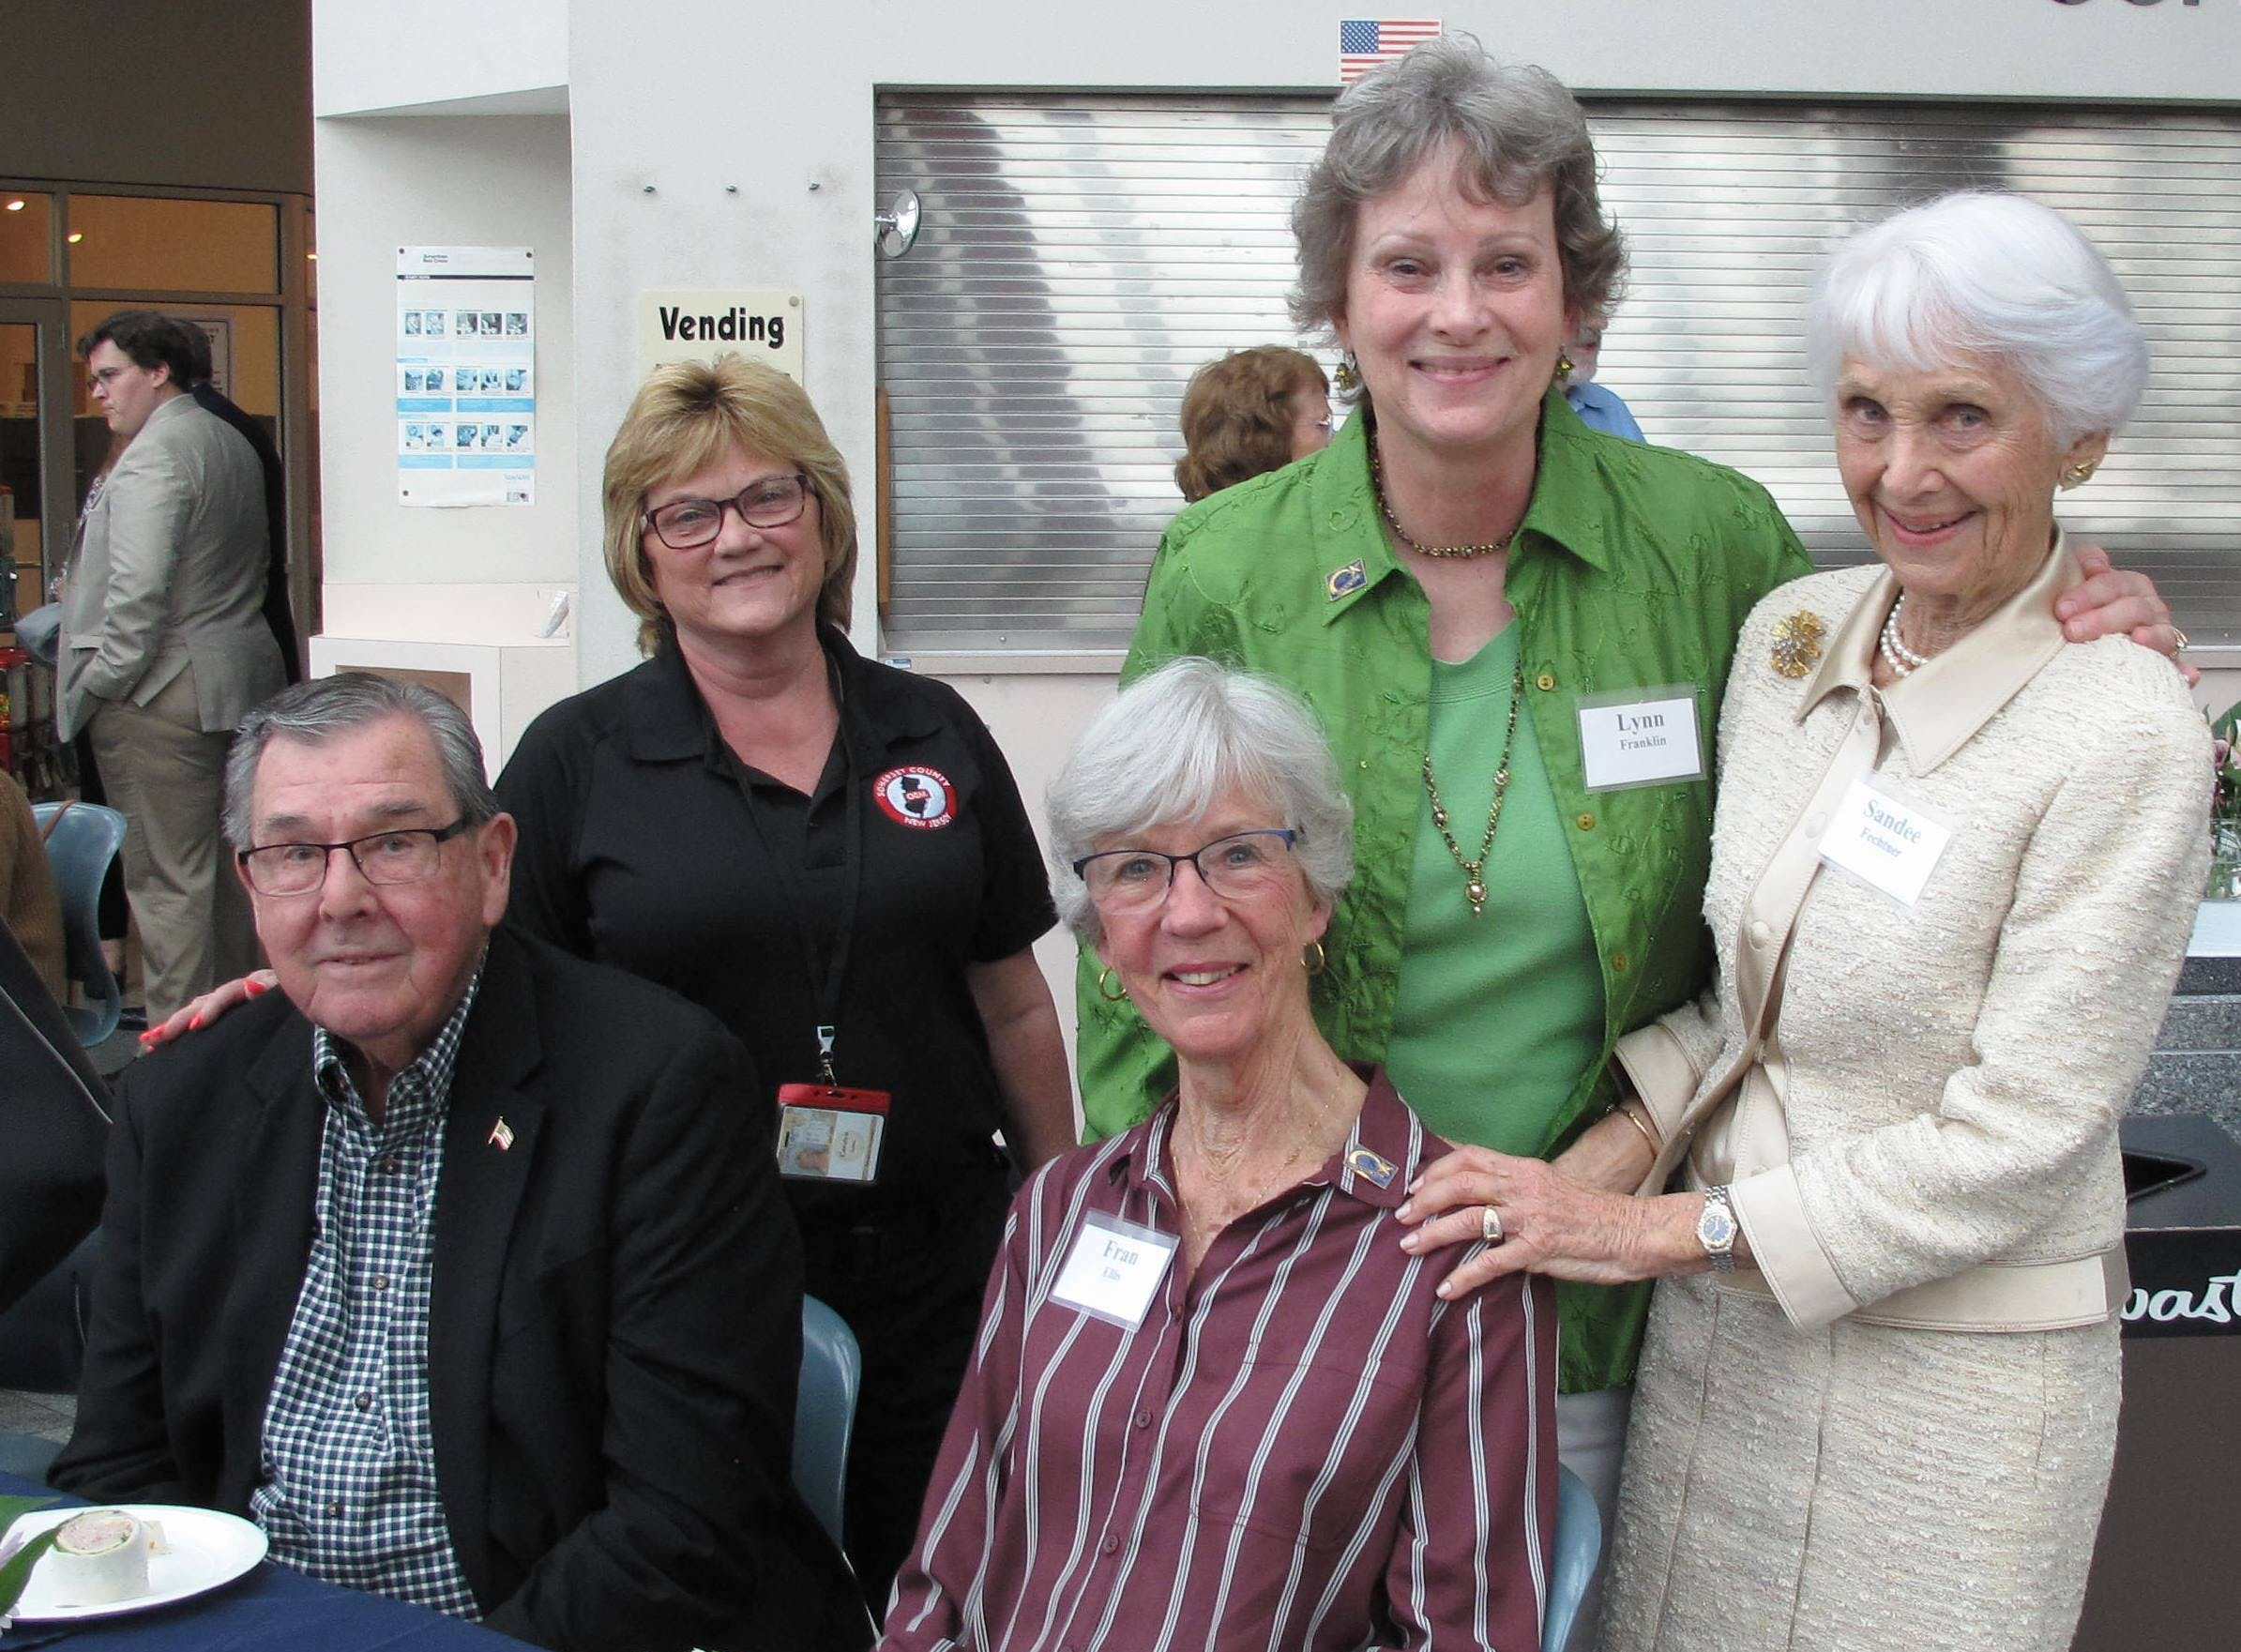 Lynn Franklin (in green), volunteer president of the Kaleidoscope of Hope Foundation.